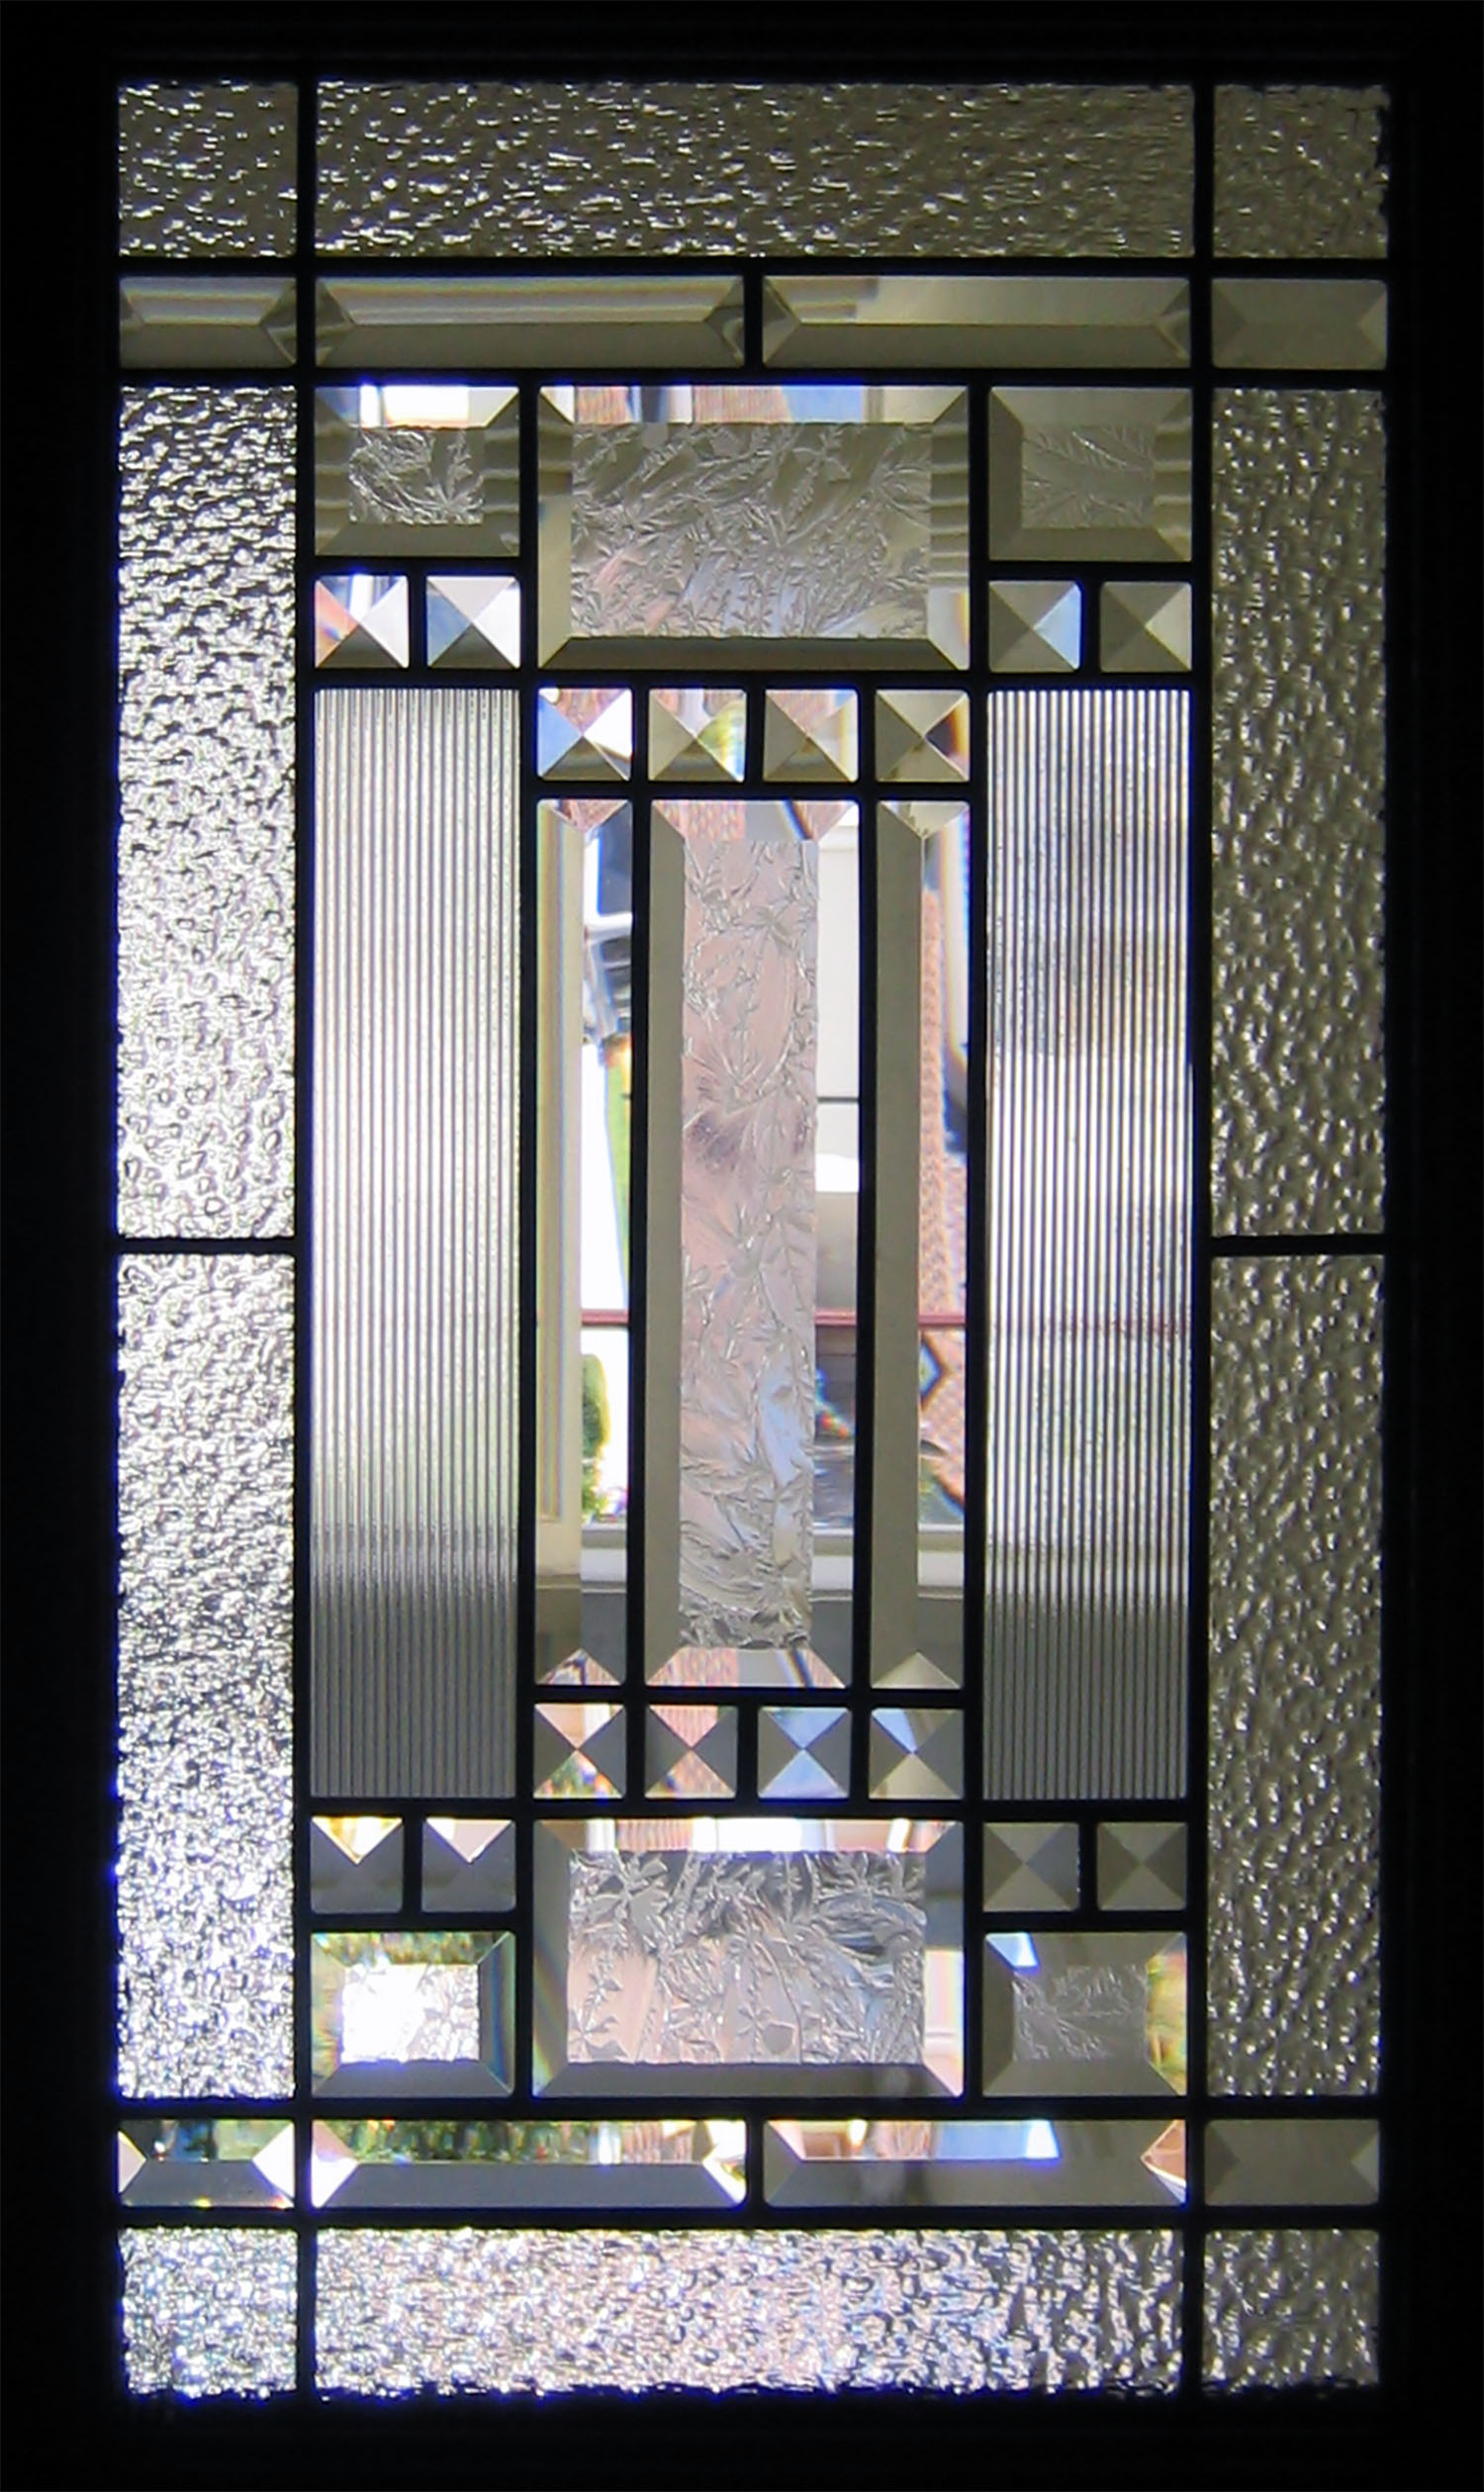 art deco pencil bevel clear texture corded glass granite frank lloyd wright craftsman leaded glass stained glass window palo alto atherton california san francisco san jose.jpg